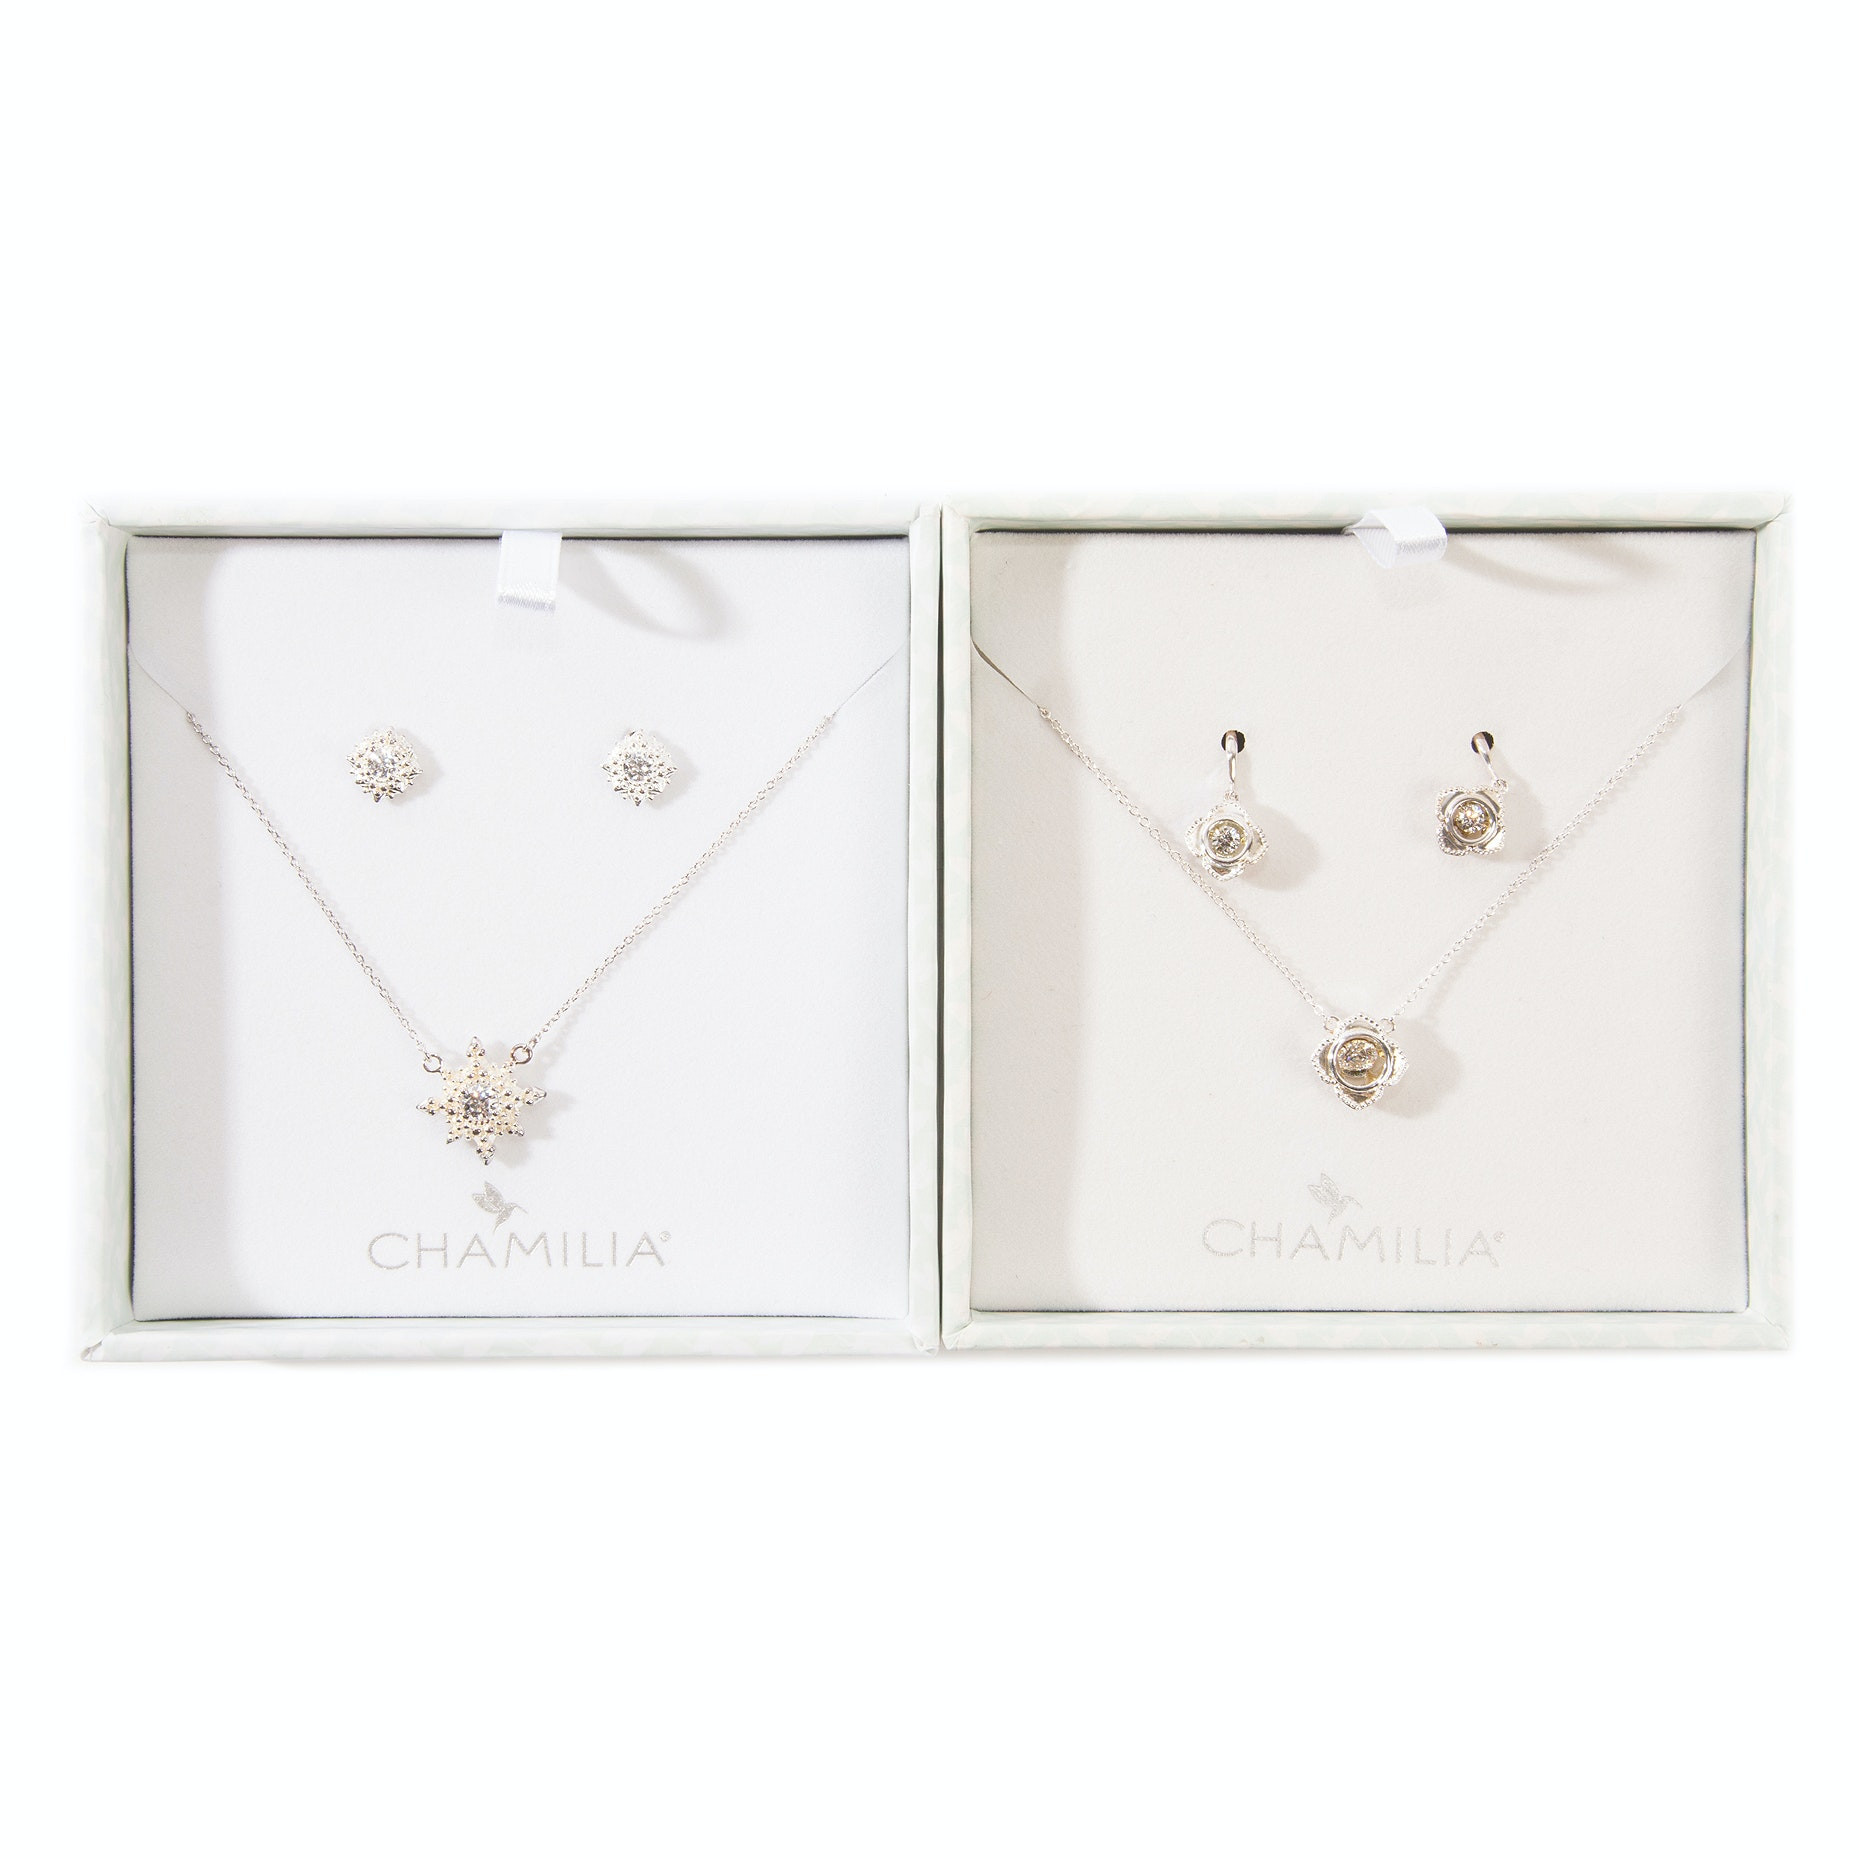 Sterling Silver Chamilia Earrings & Necklace Gift Sets